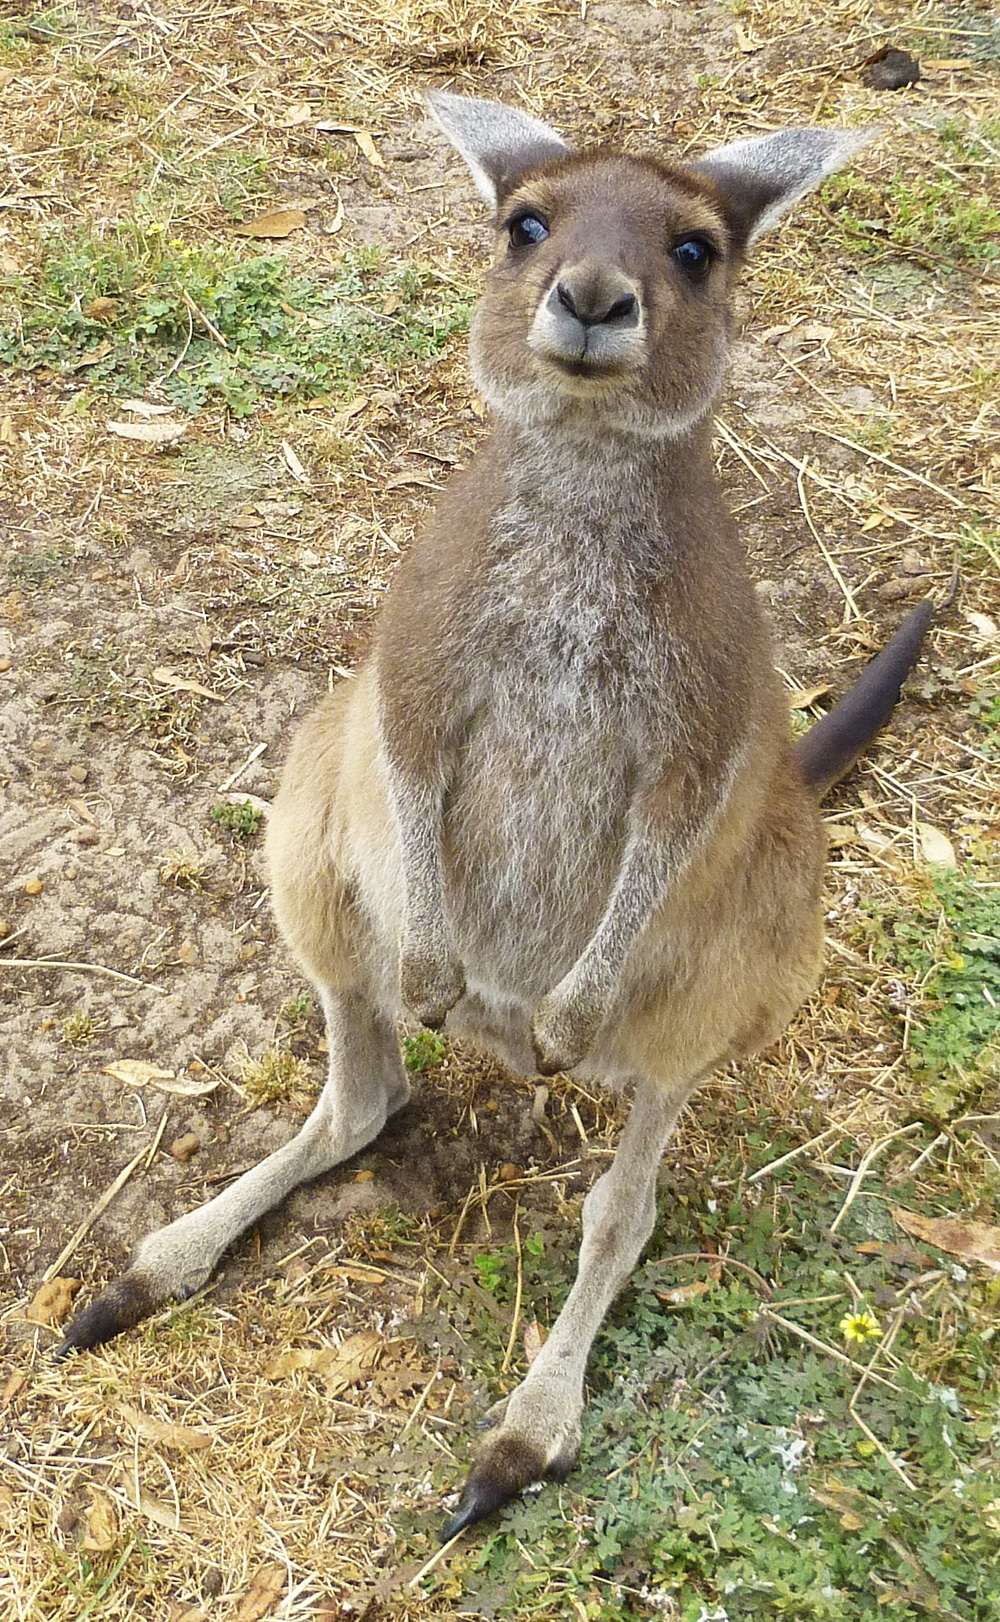 Adult Kangaroo at Uralla Wildlife Sanctuary